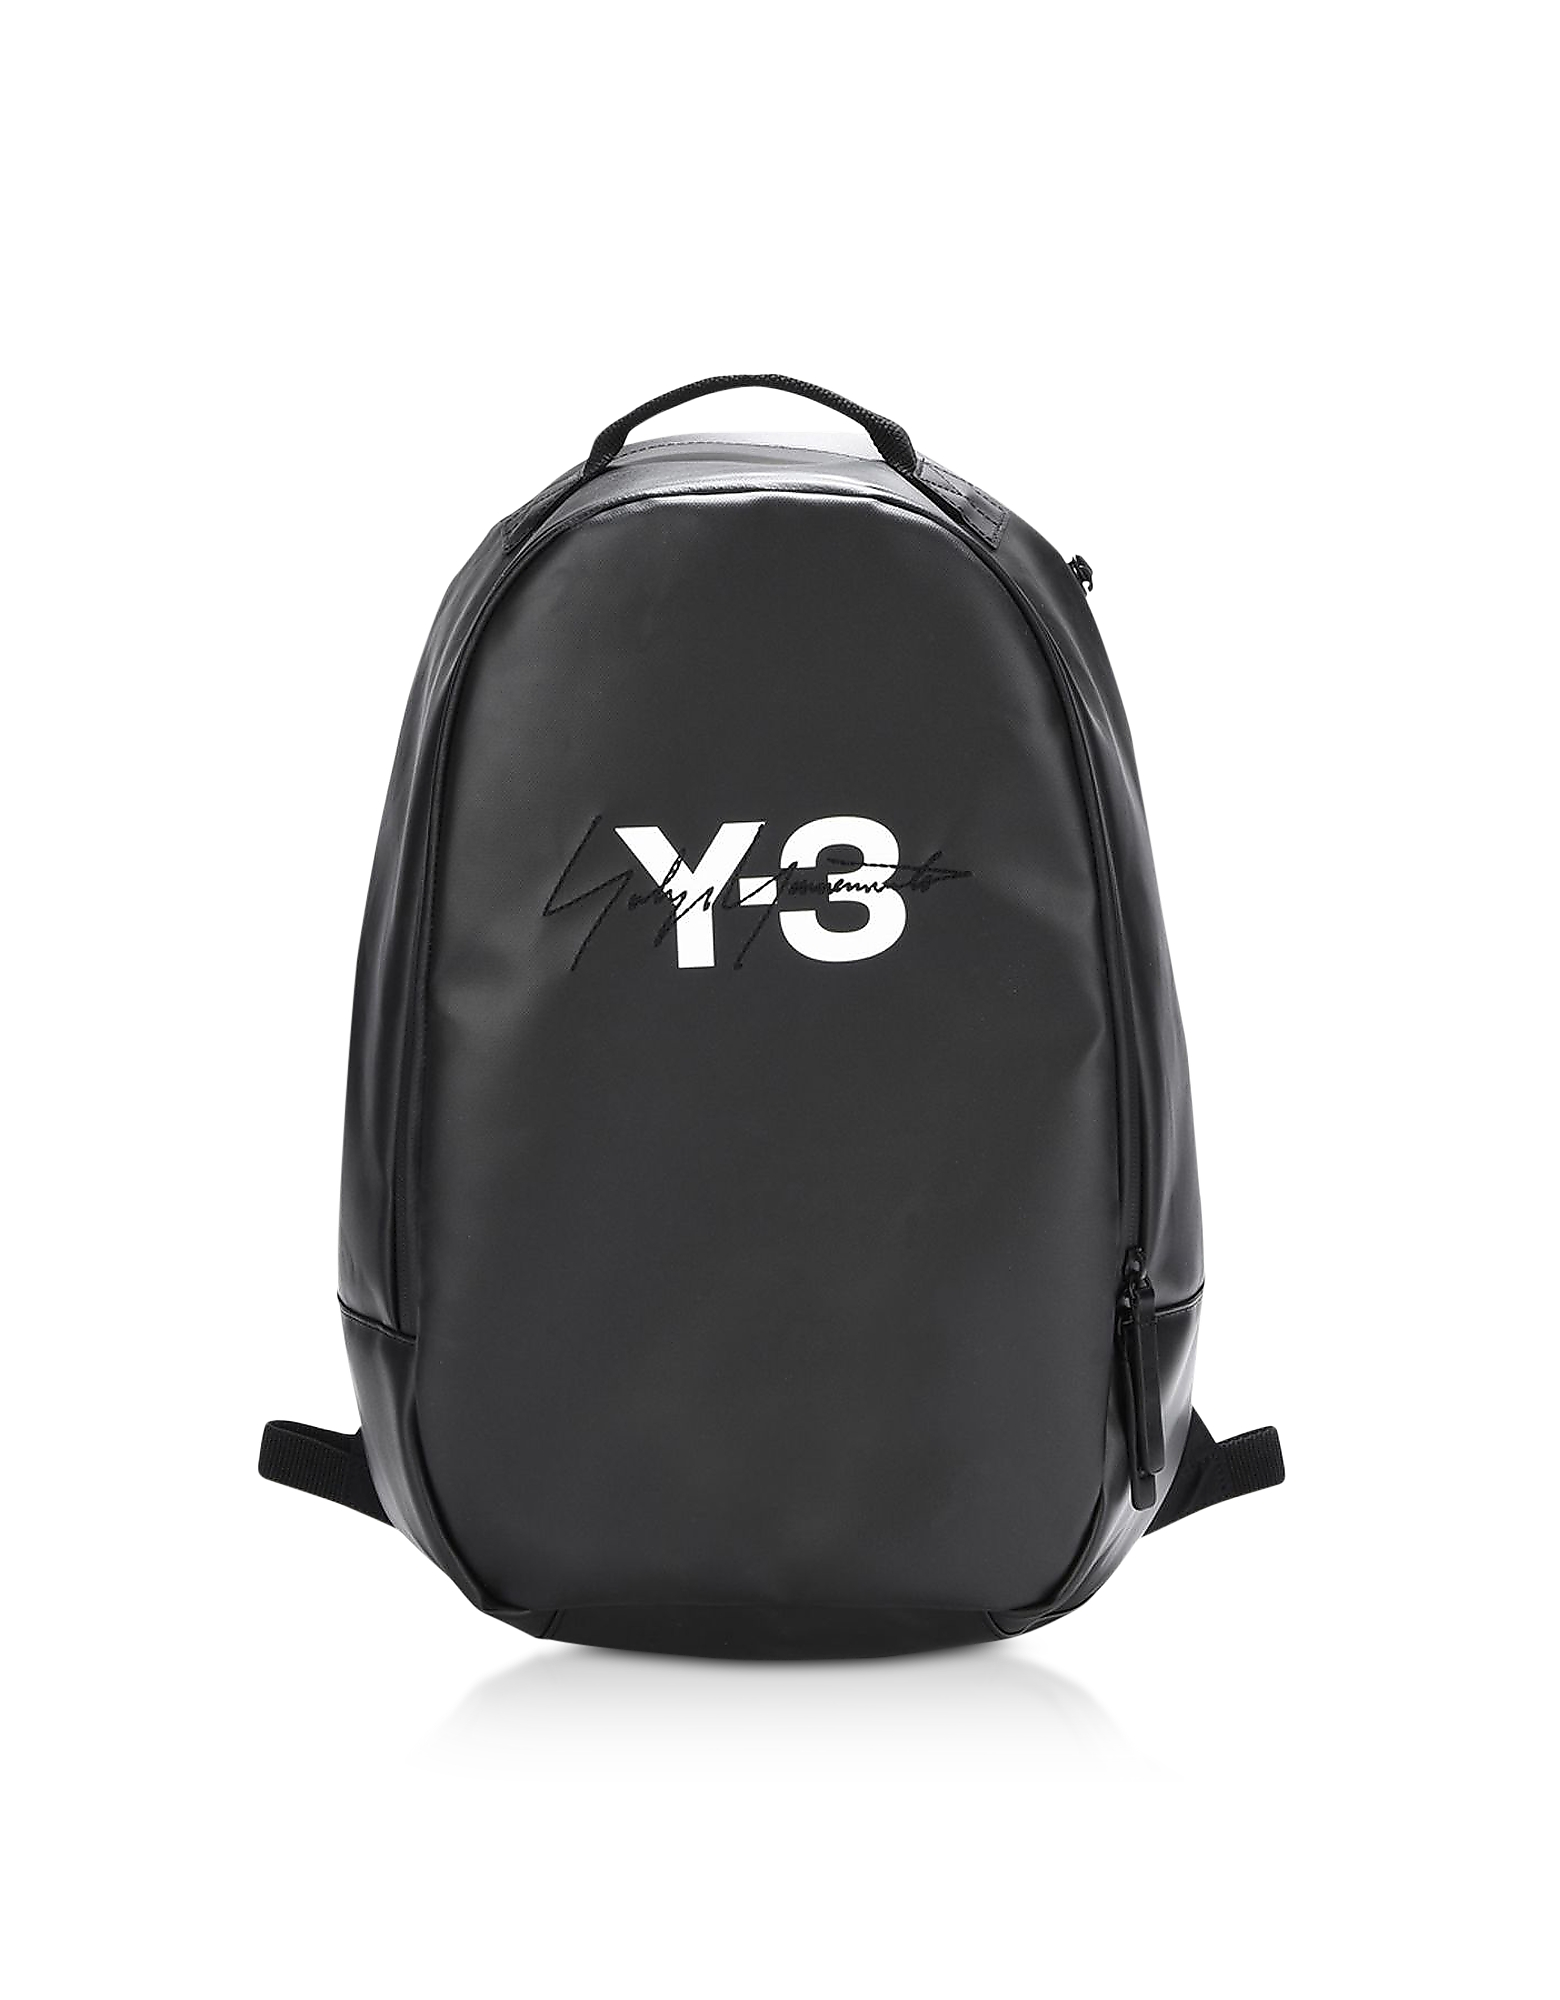 Y-3 Backpacks, Black Coated Canvas Signature Backpack